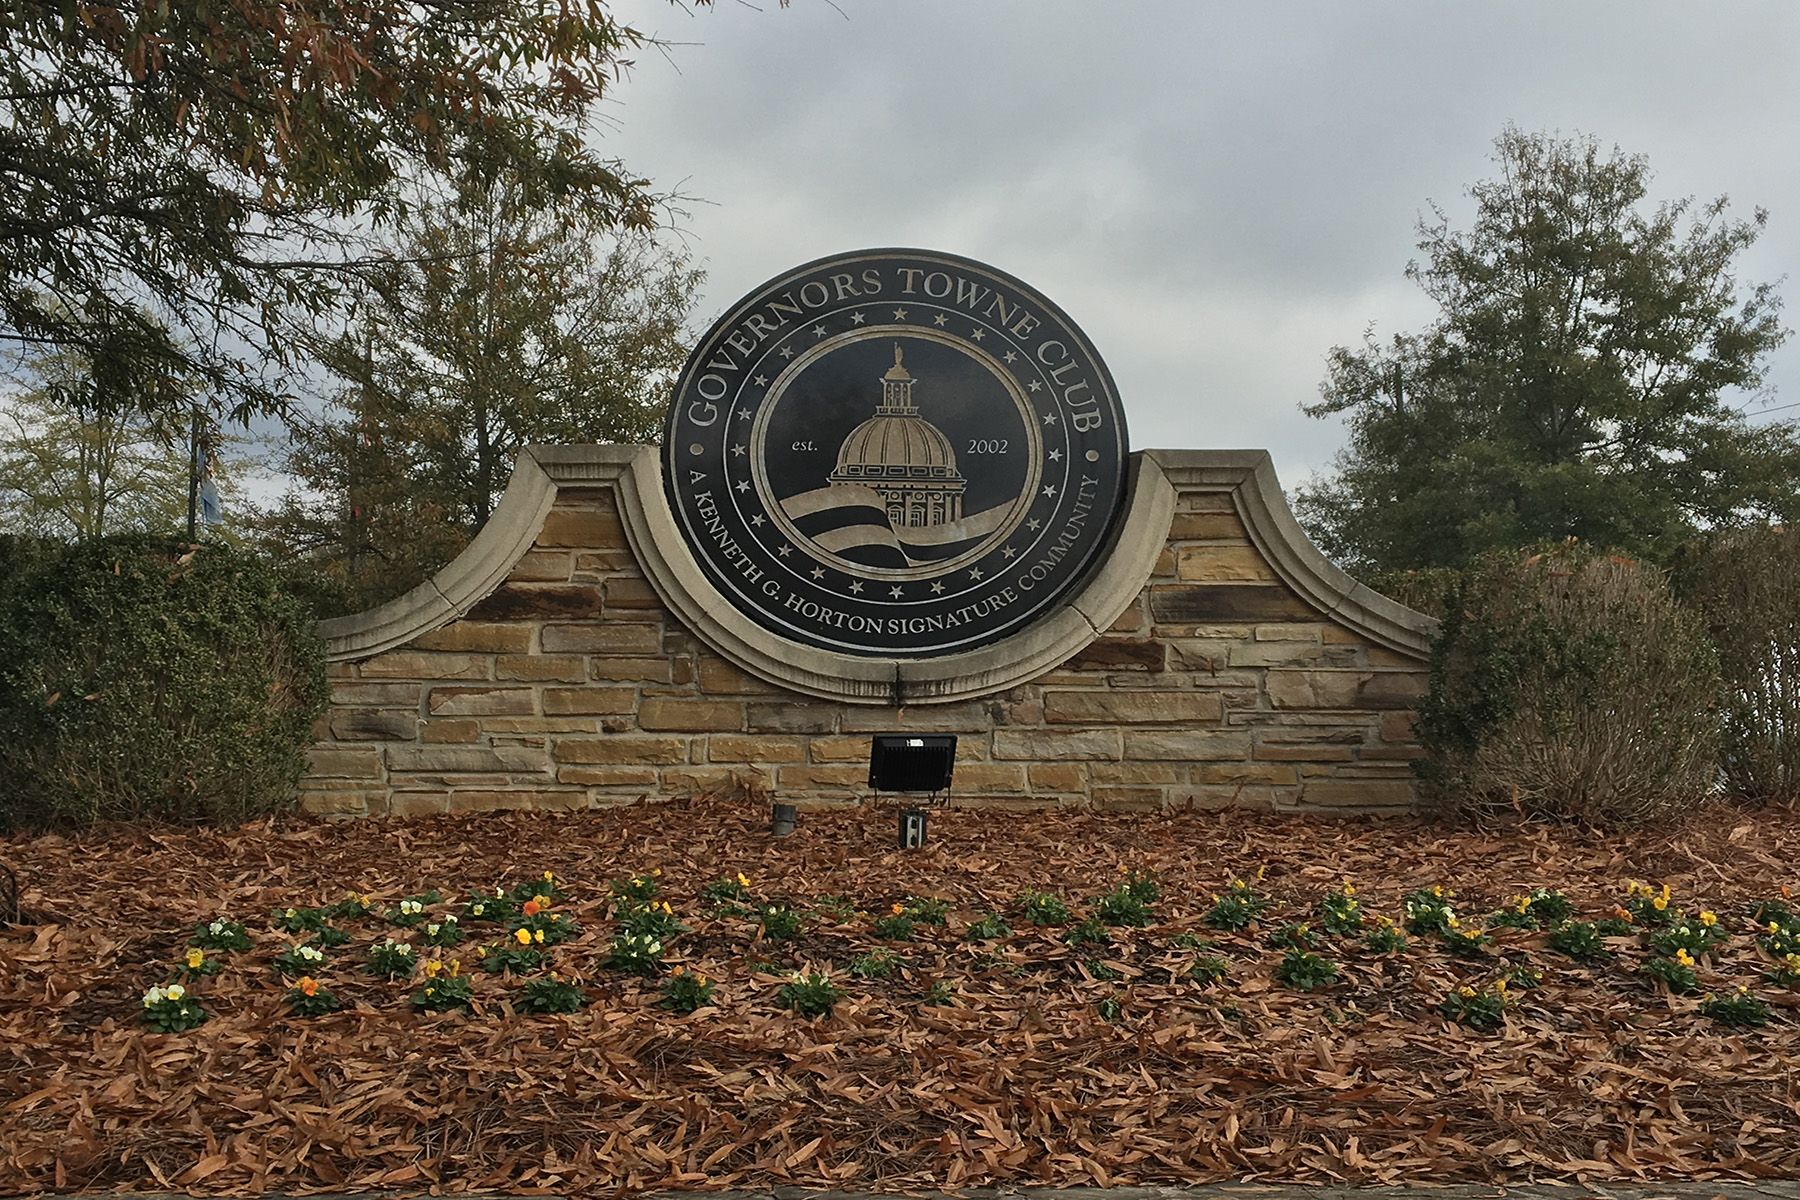 Land for Sale at Golf Course Lot Located In One of Atlanta's Most Prestigious Communities 6323 Howell Cobb Court, Acworth, Georgia, 30101 United States